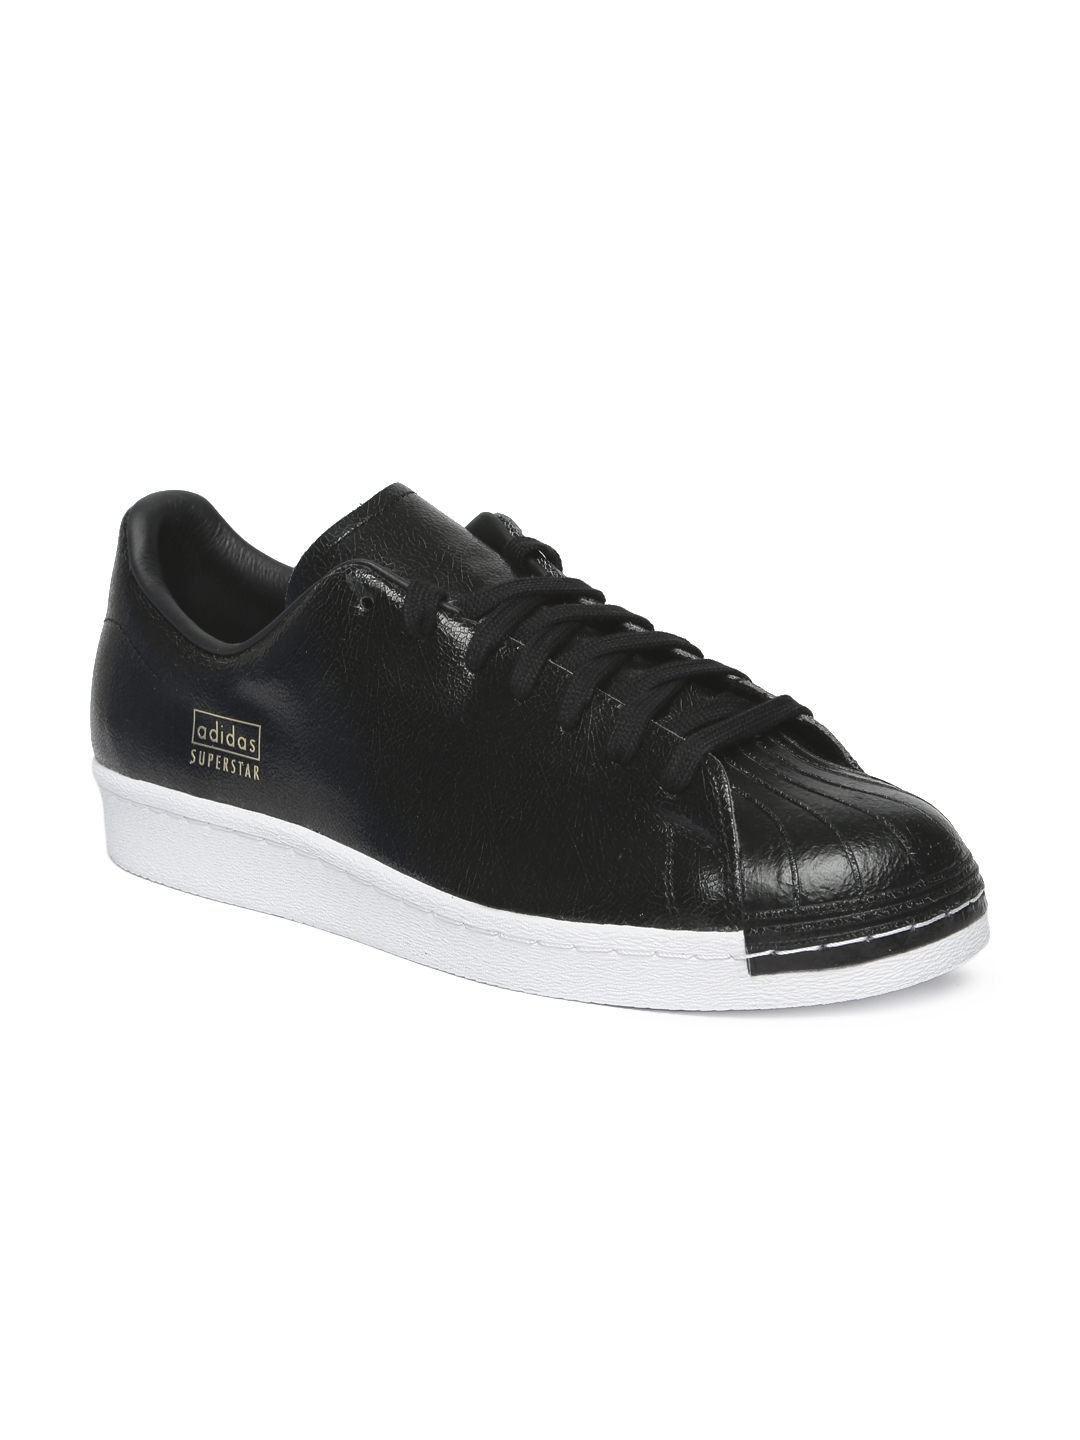 43bb53f04 Buy ADIDAS Originals Men Black SUPERSTAR 80S CLEAN Leather Sneakers ...